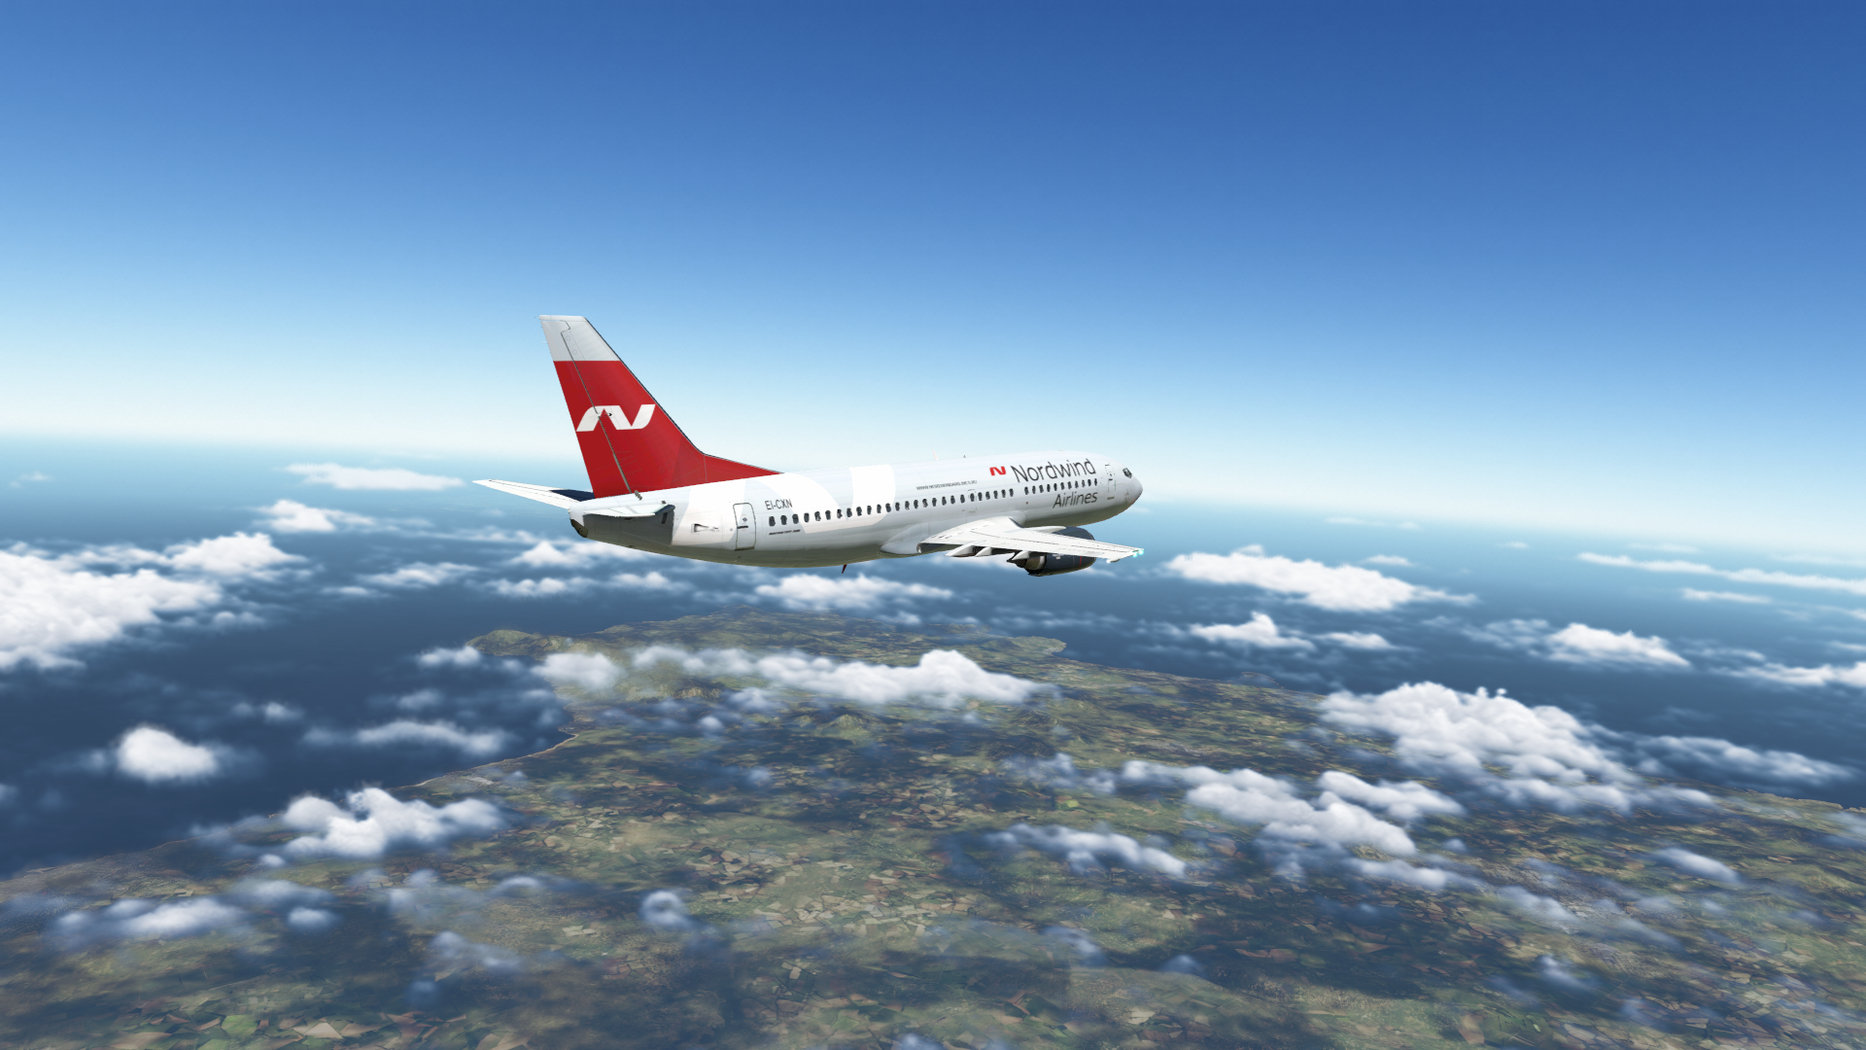 B733 - 2019-06-12 16.59.45.png